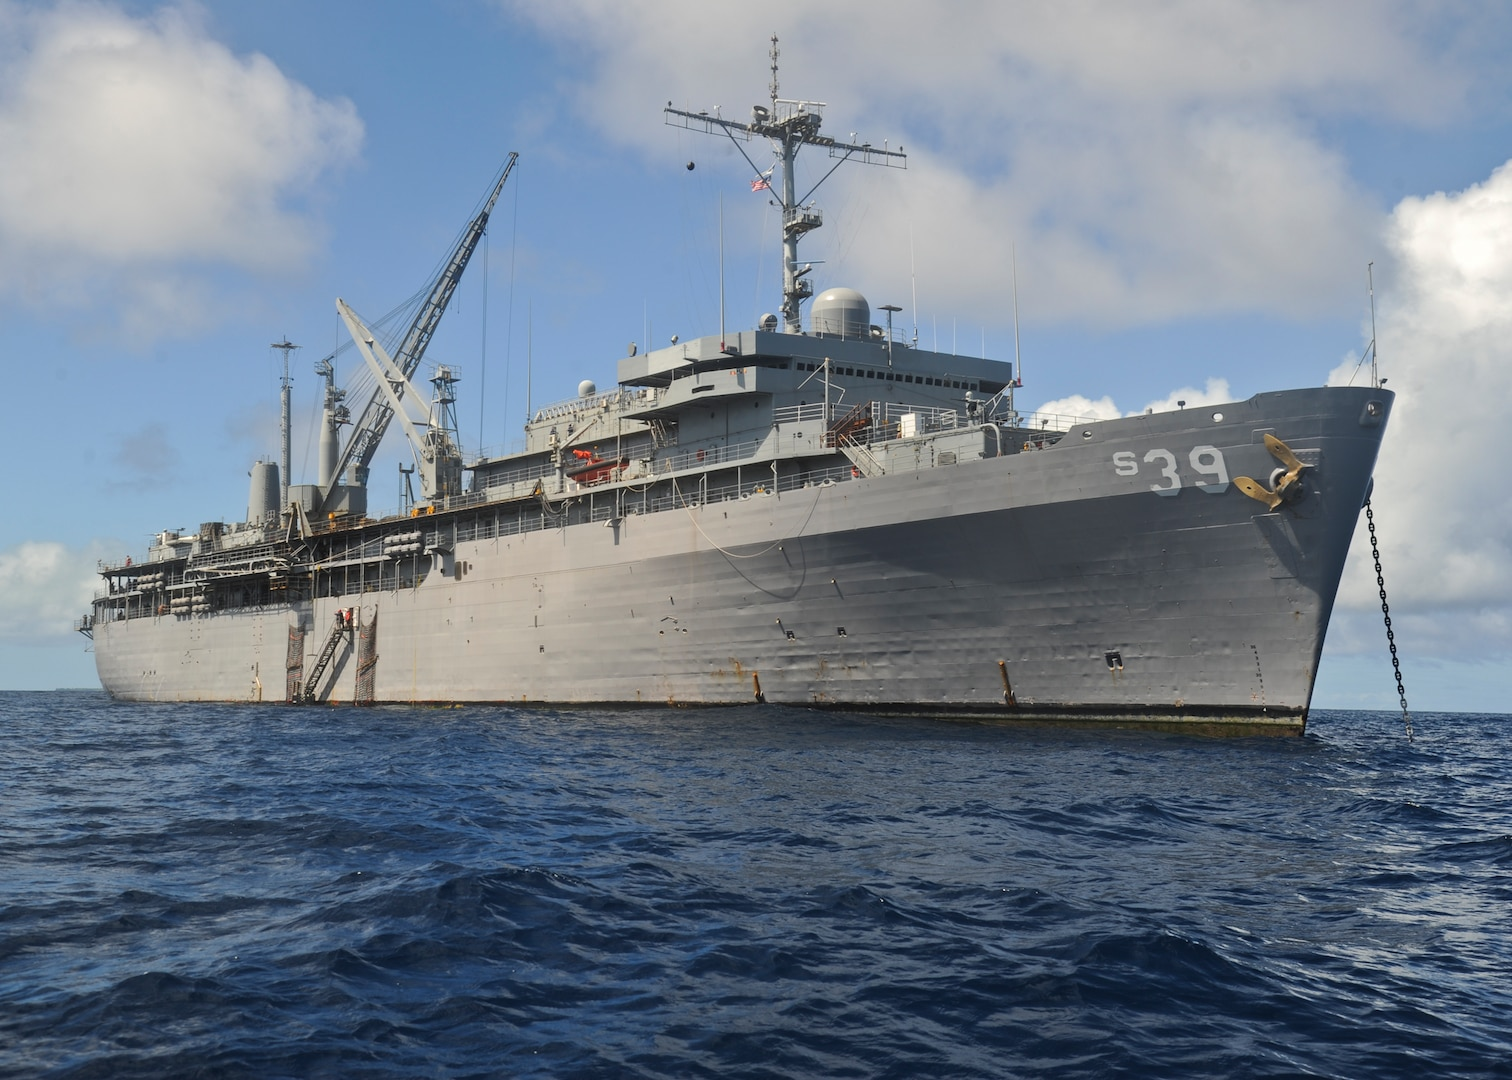 USS Emory S. Land Visits Historically Significant Atoll in Ulithi